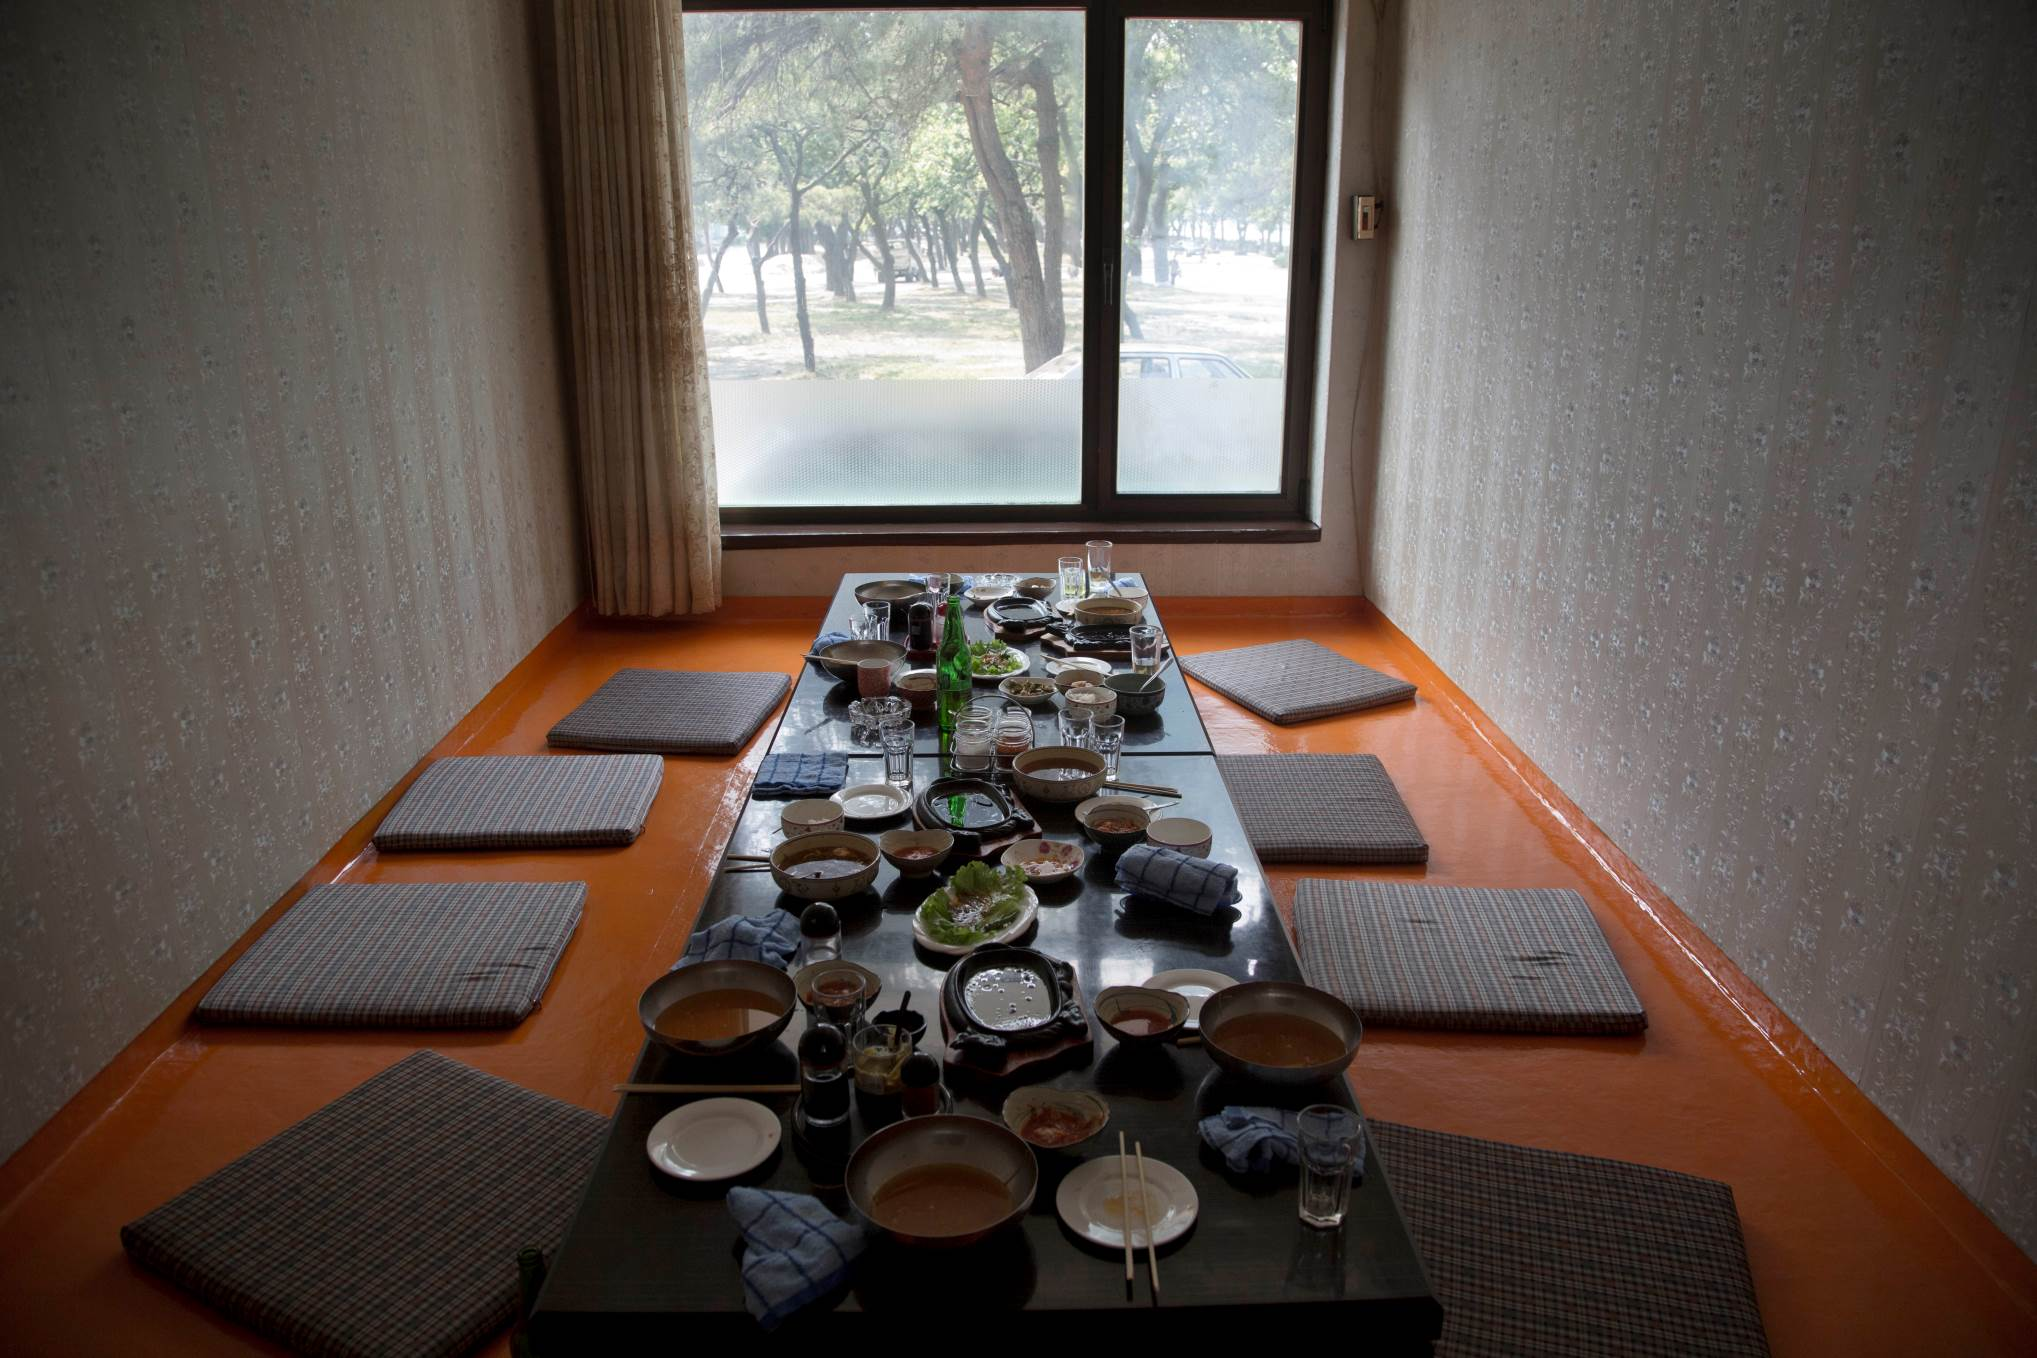 The remains of lunch sits on a restaurant table in the city of Wonsan, North Korea.